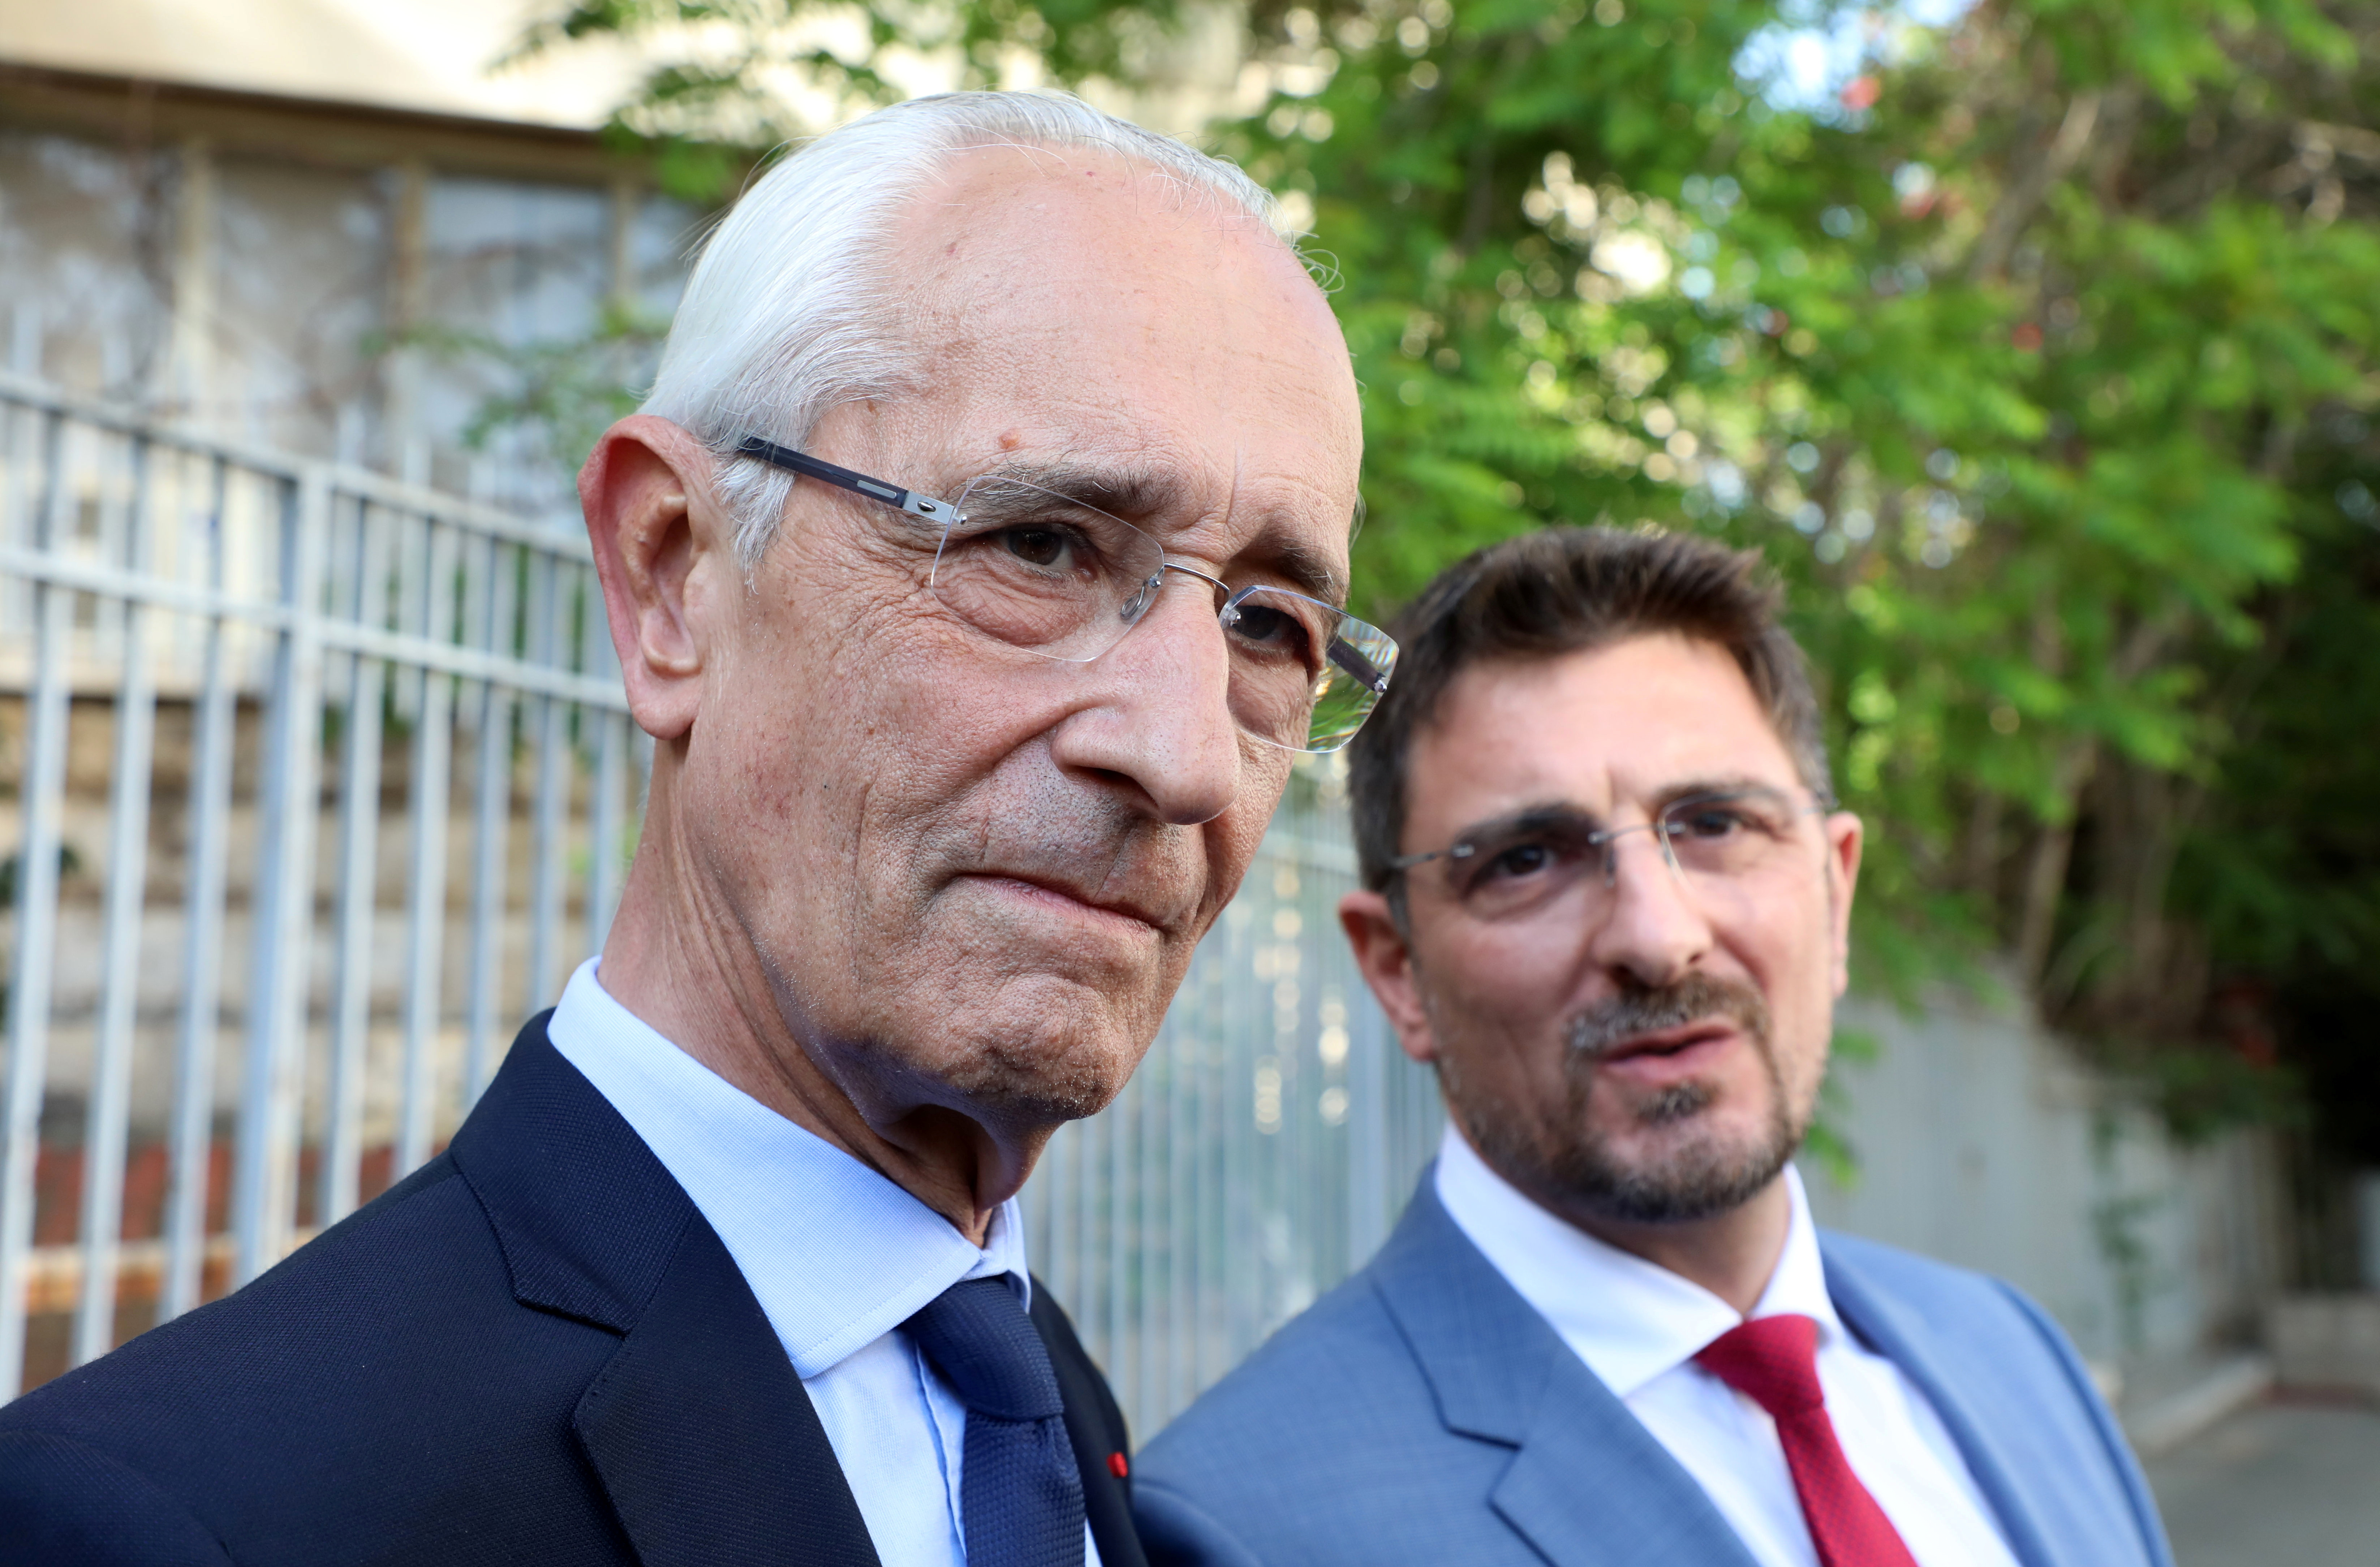 Jean Yves Le Borgne and Jean Tamalet, lawyers of fugitive former car executive Carlos Ghosn, speak to journalists outside the Justice Palace, in Beirut, Lebanon May 31, 2021. REUTERS/Mohamed Azakir